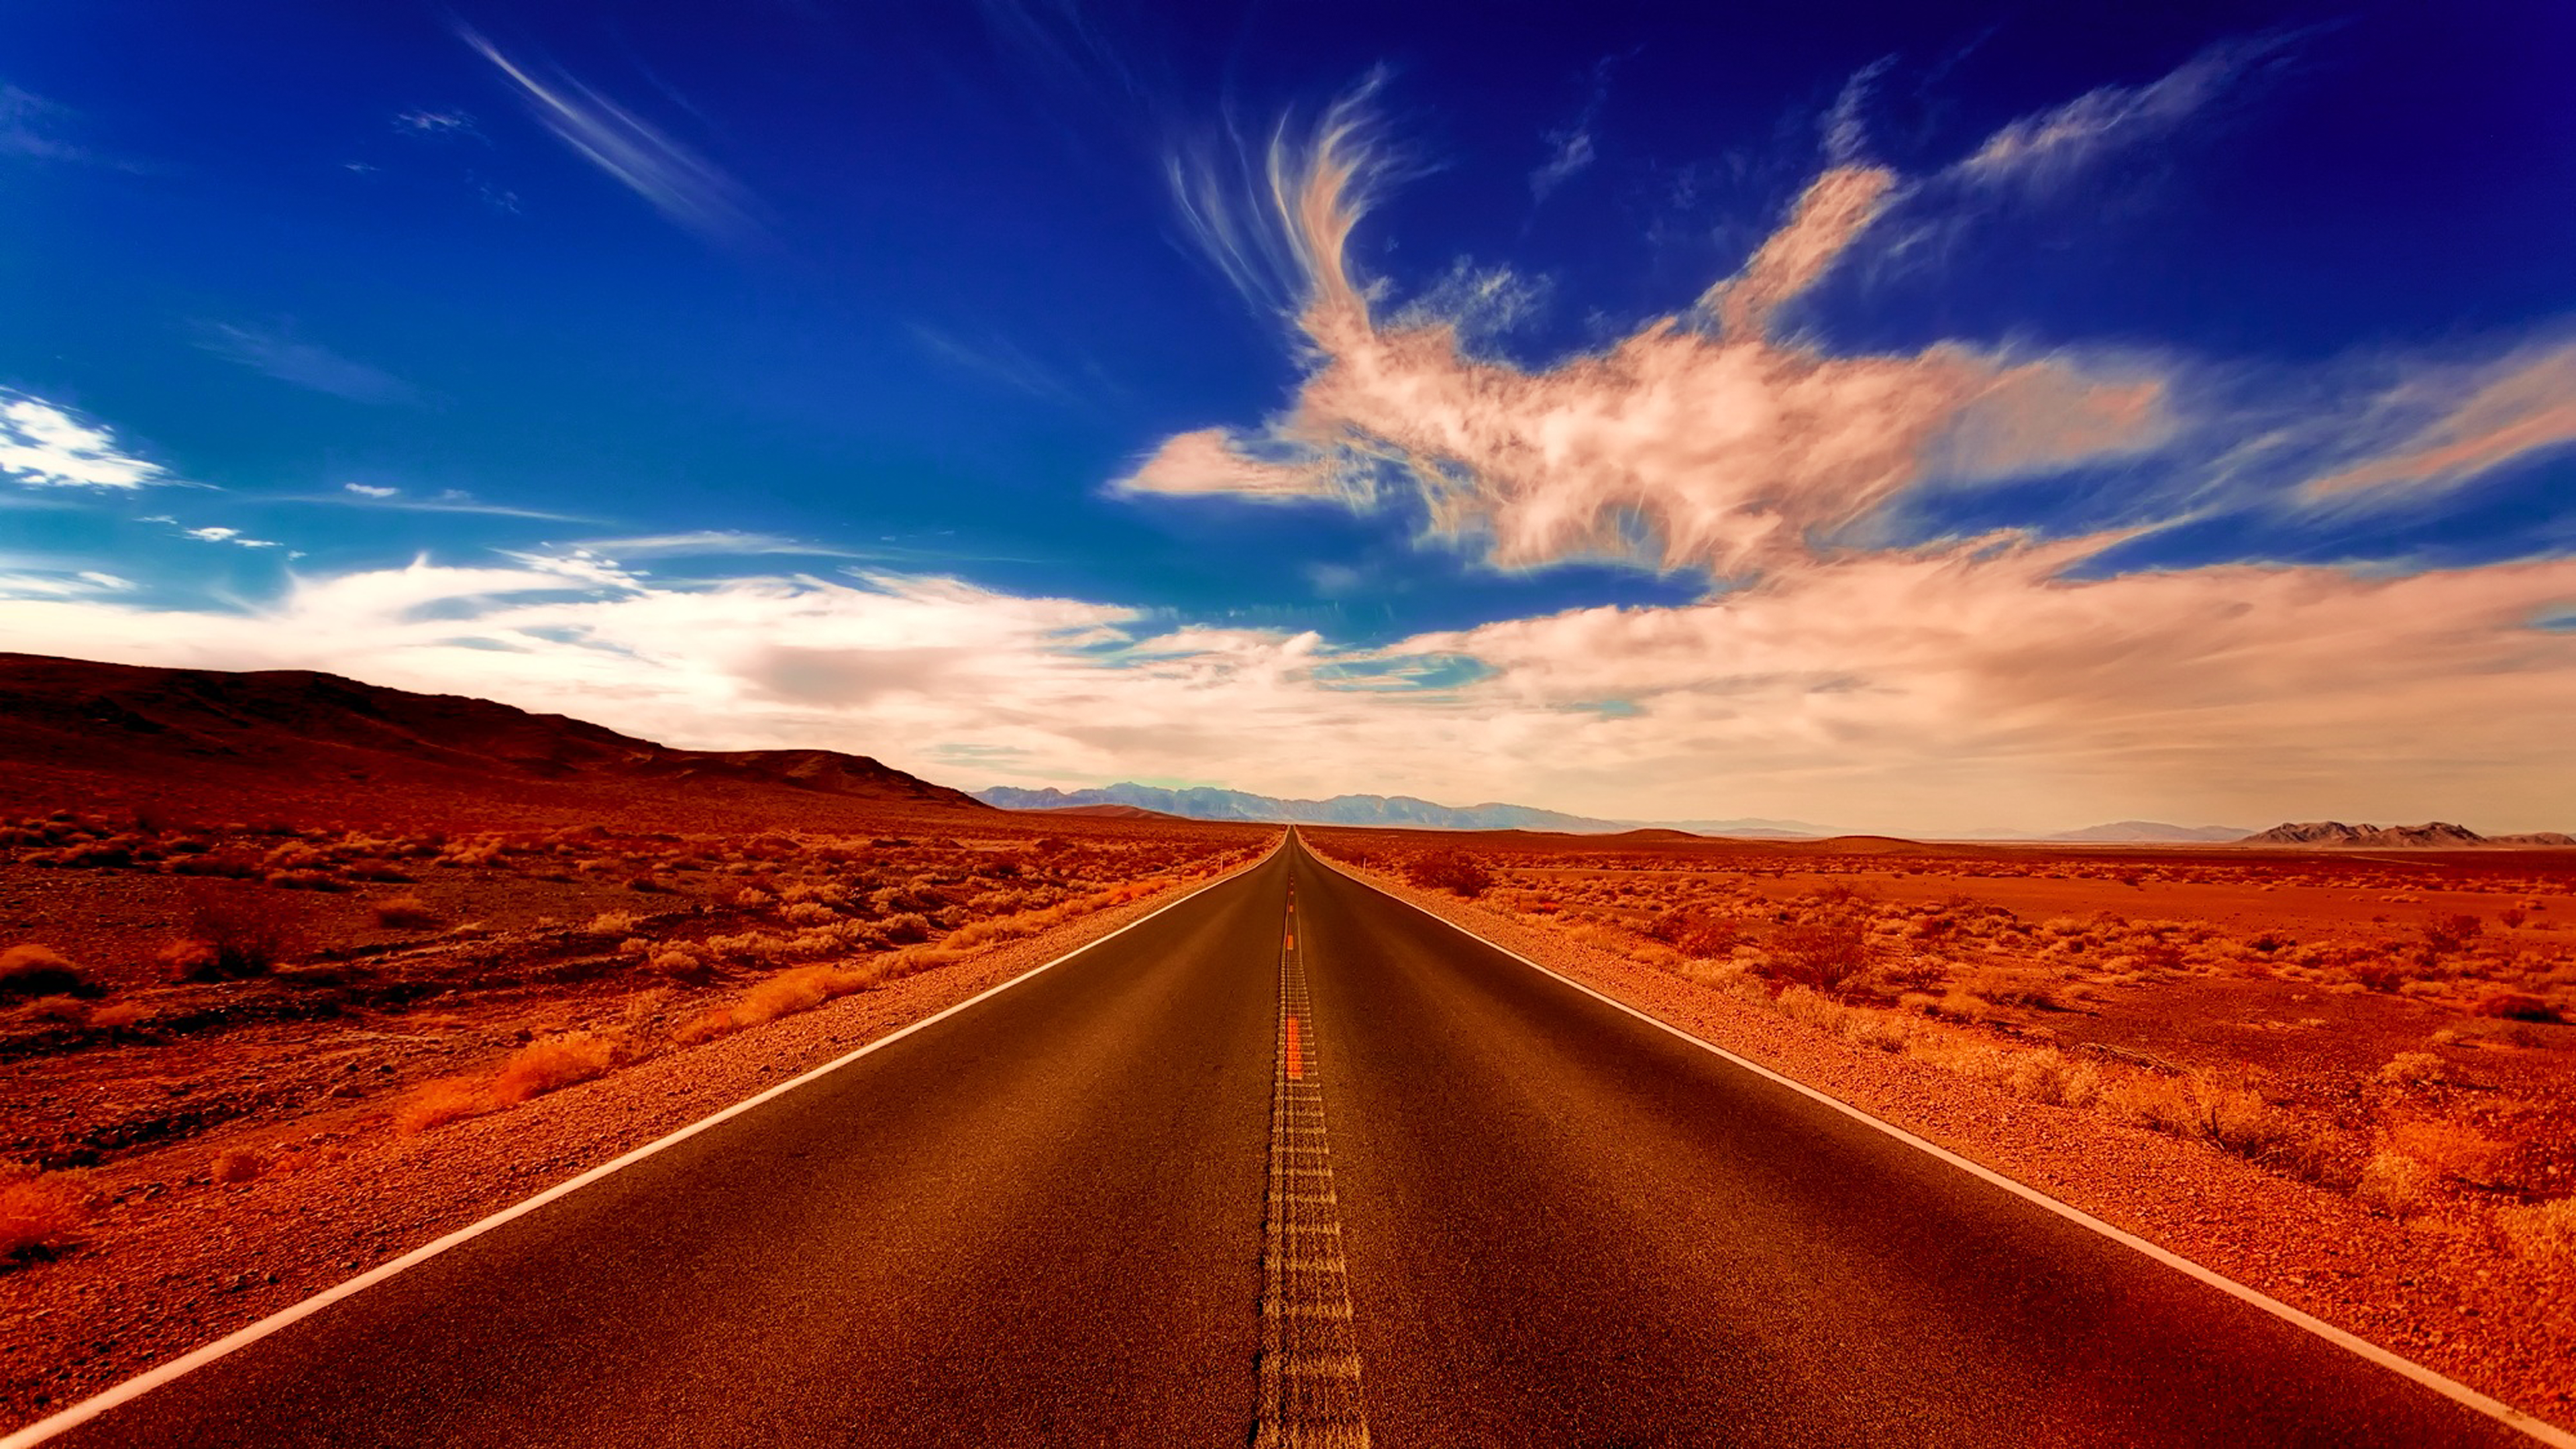 Desert Highway 4K Wallpaper Download